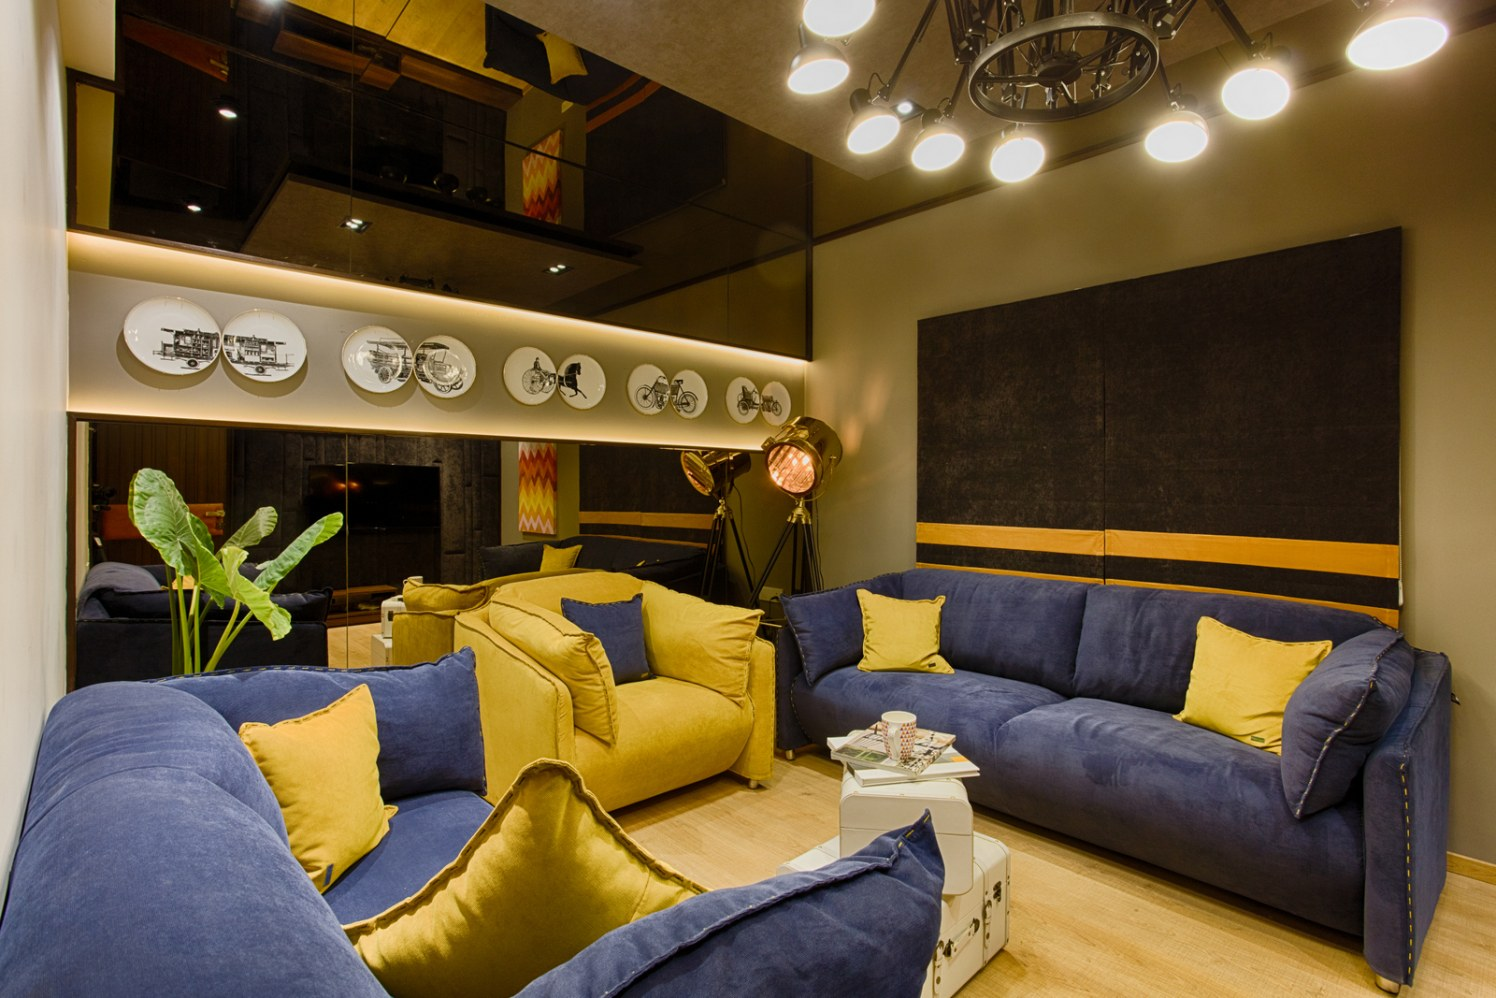 Azure Blue And Bright Yellow Sofa Set In Entertainment Area by Dhaval Patel Living-room Modern   Interior Design Photos & Ideas